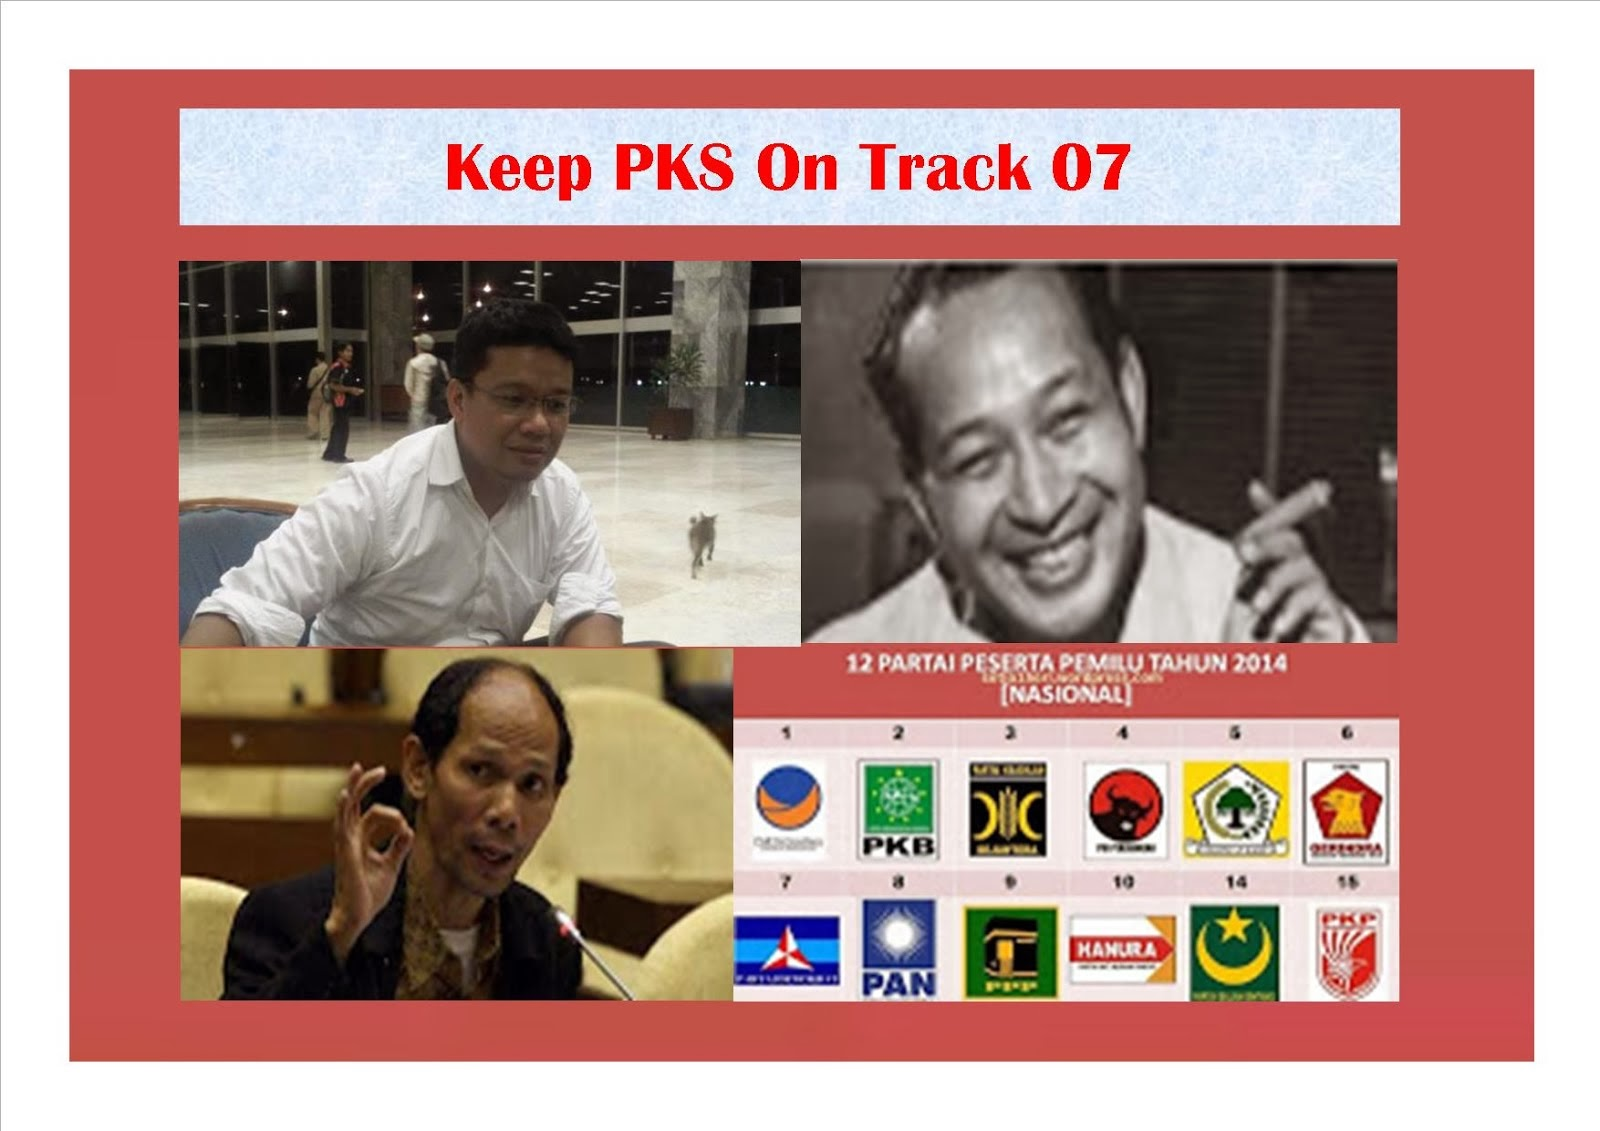 Keep PKS On Track 07